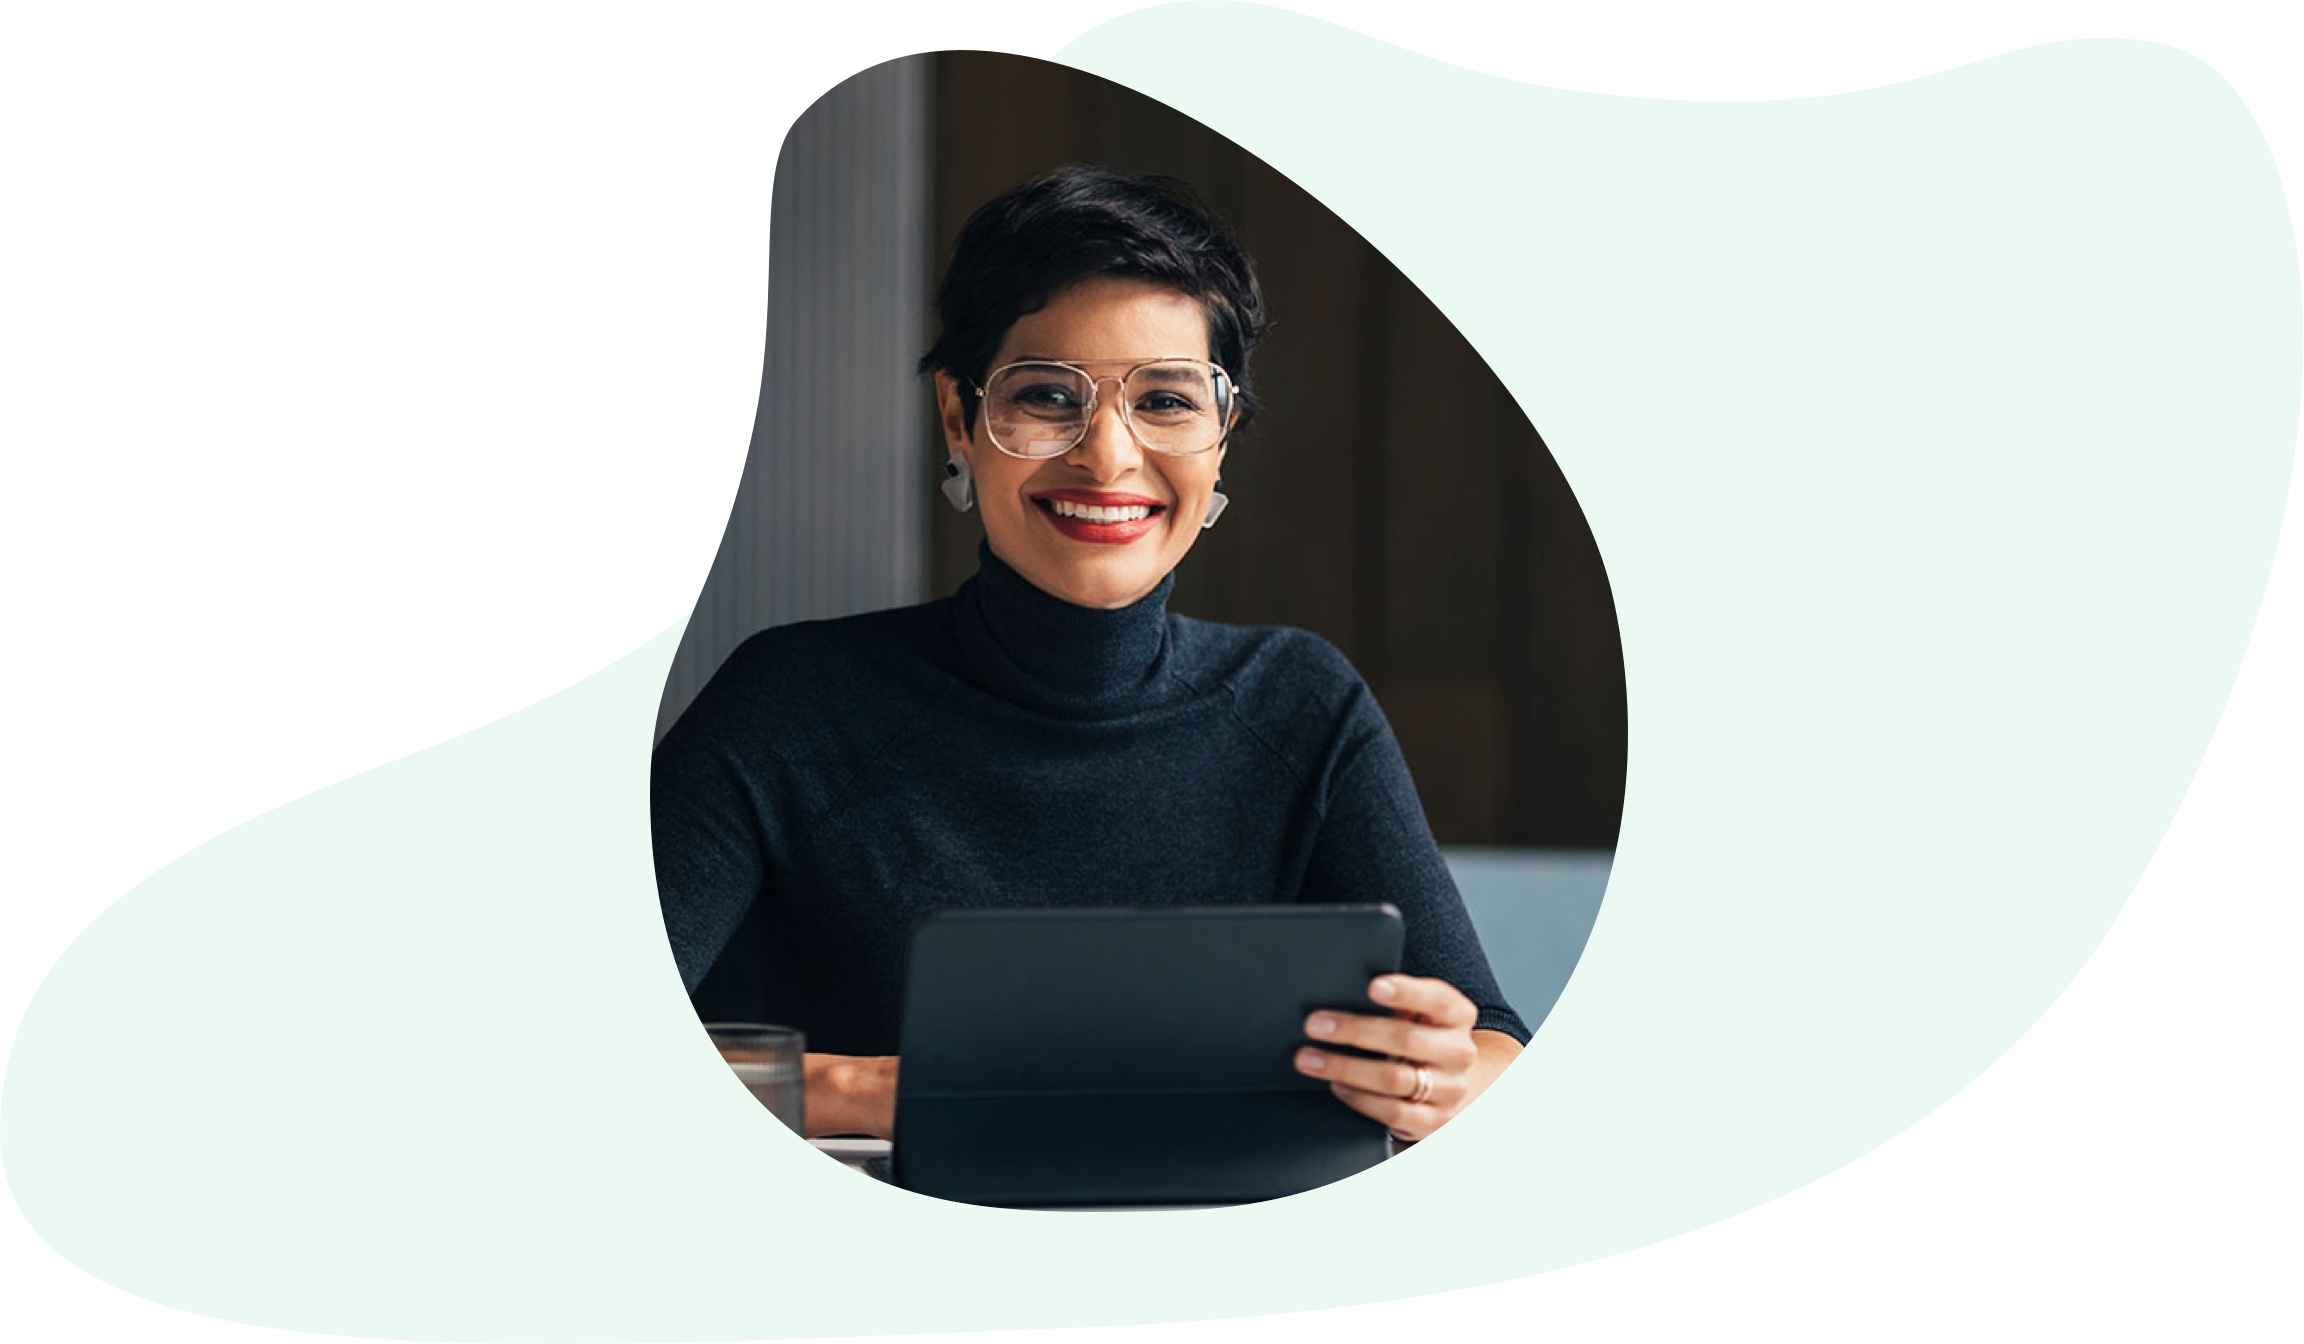 Professional woman holding a tablet and smiling